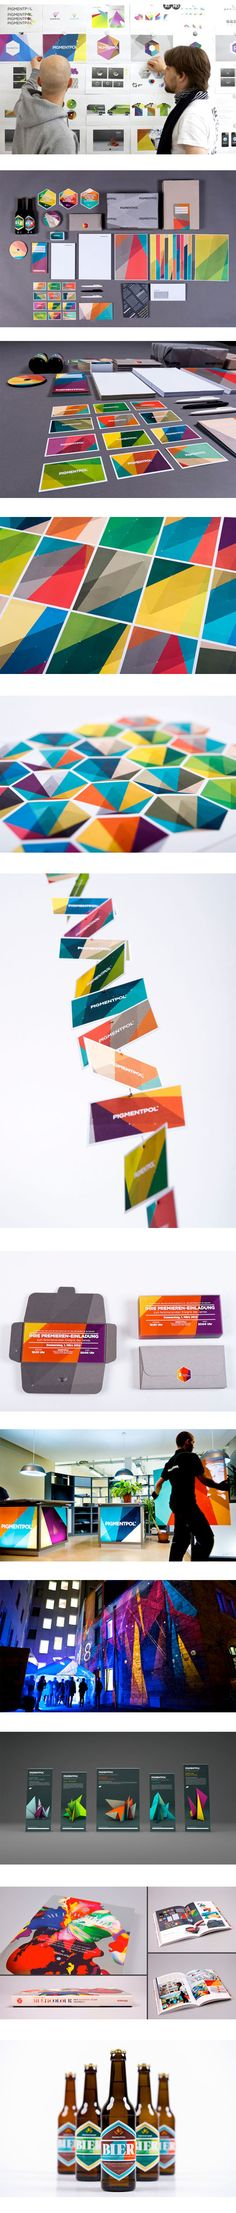 Work from FELD studio for digital crafts and German based studio ATMO for digital printing company PIGMENTPOL